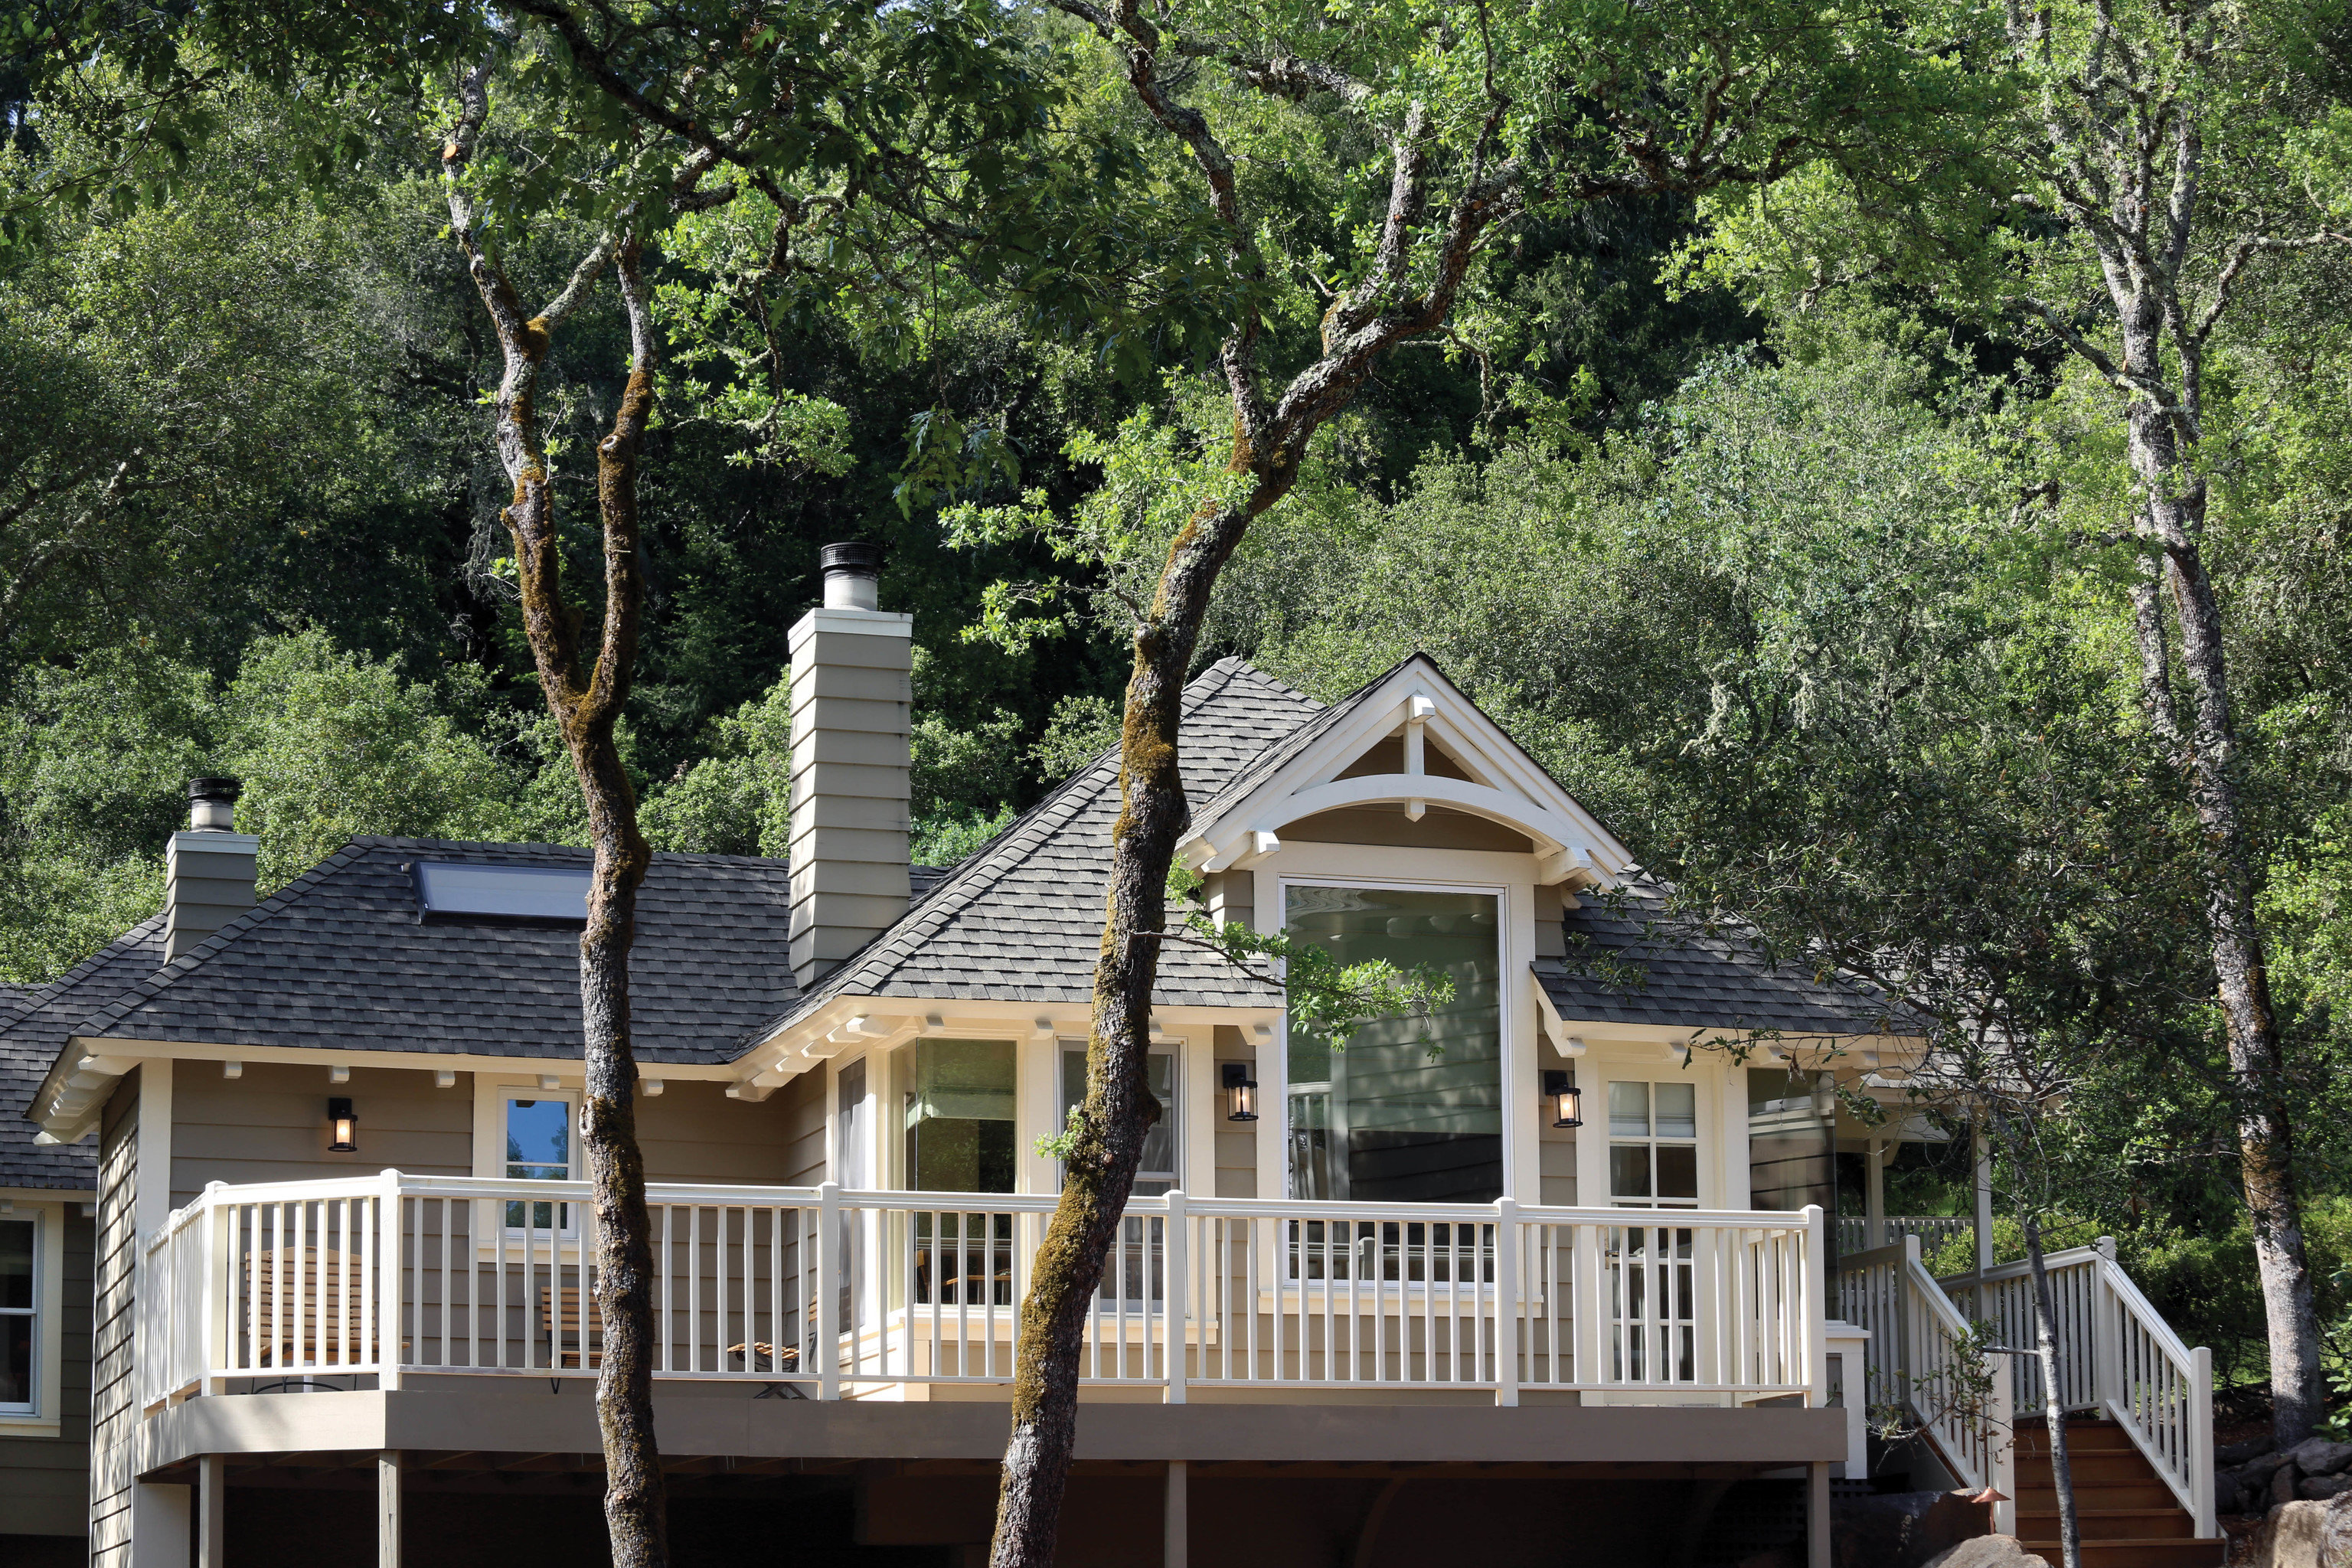 tree house property home cottage outdoor structure plant siding log cabin historic house residential